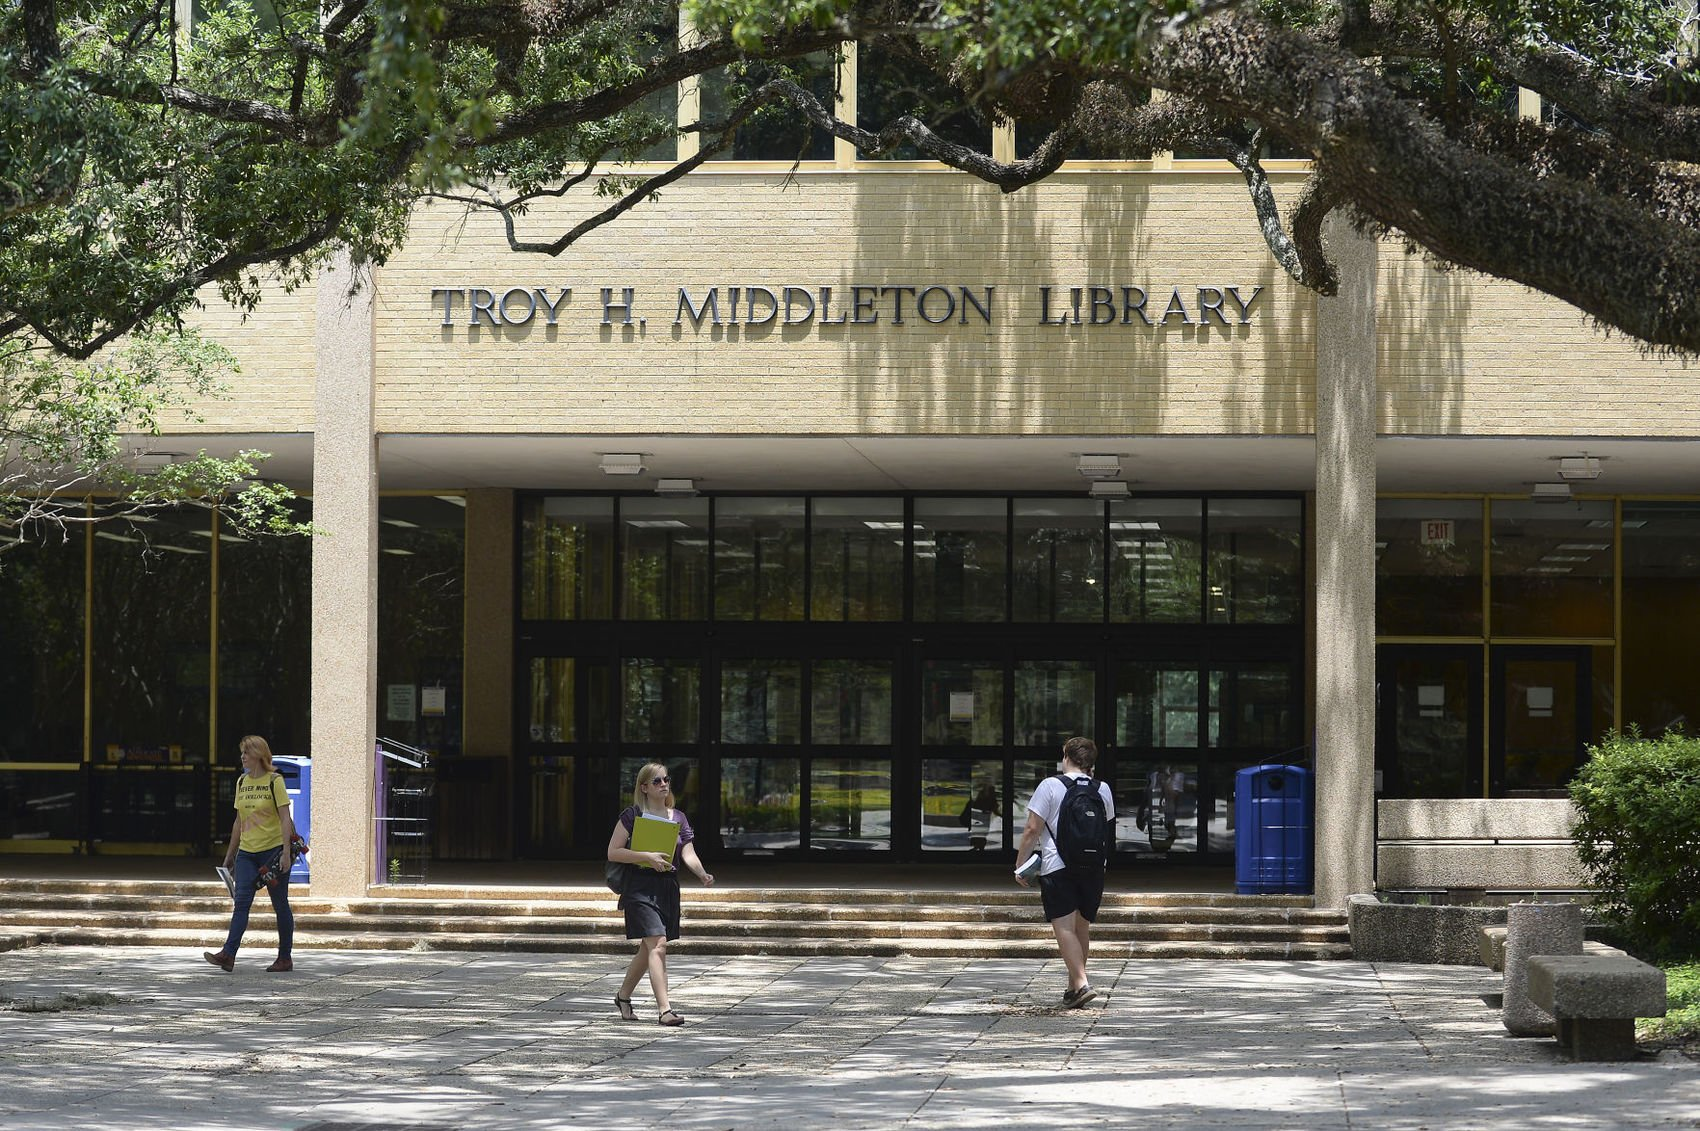 Troy H. Middleton Library on LSU's campus / Photo courtesy of The Advocate